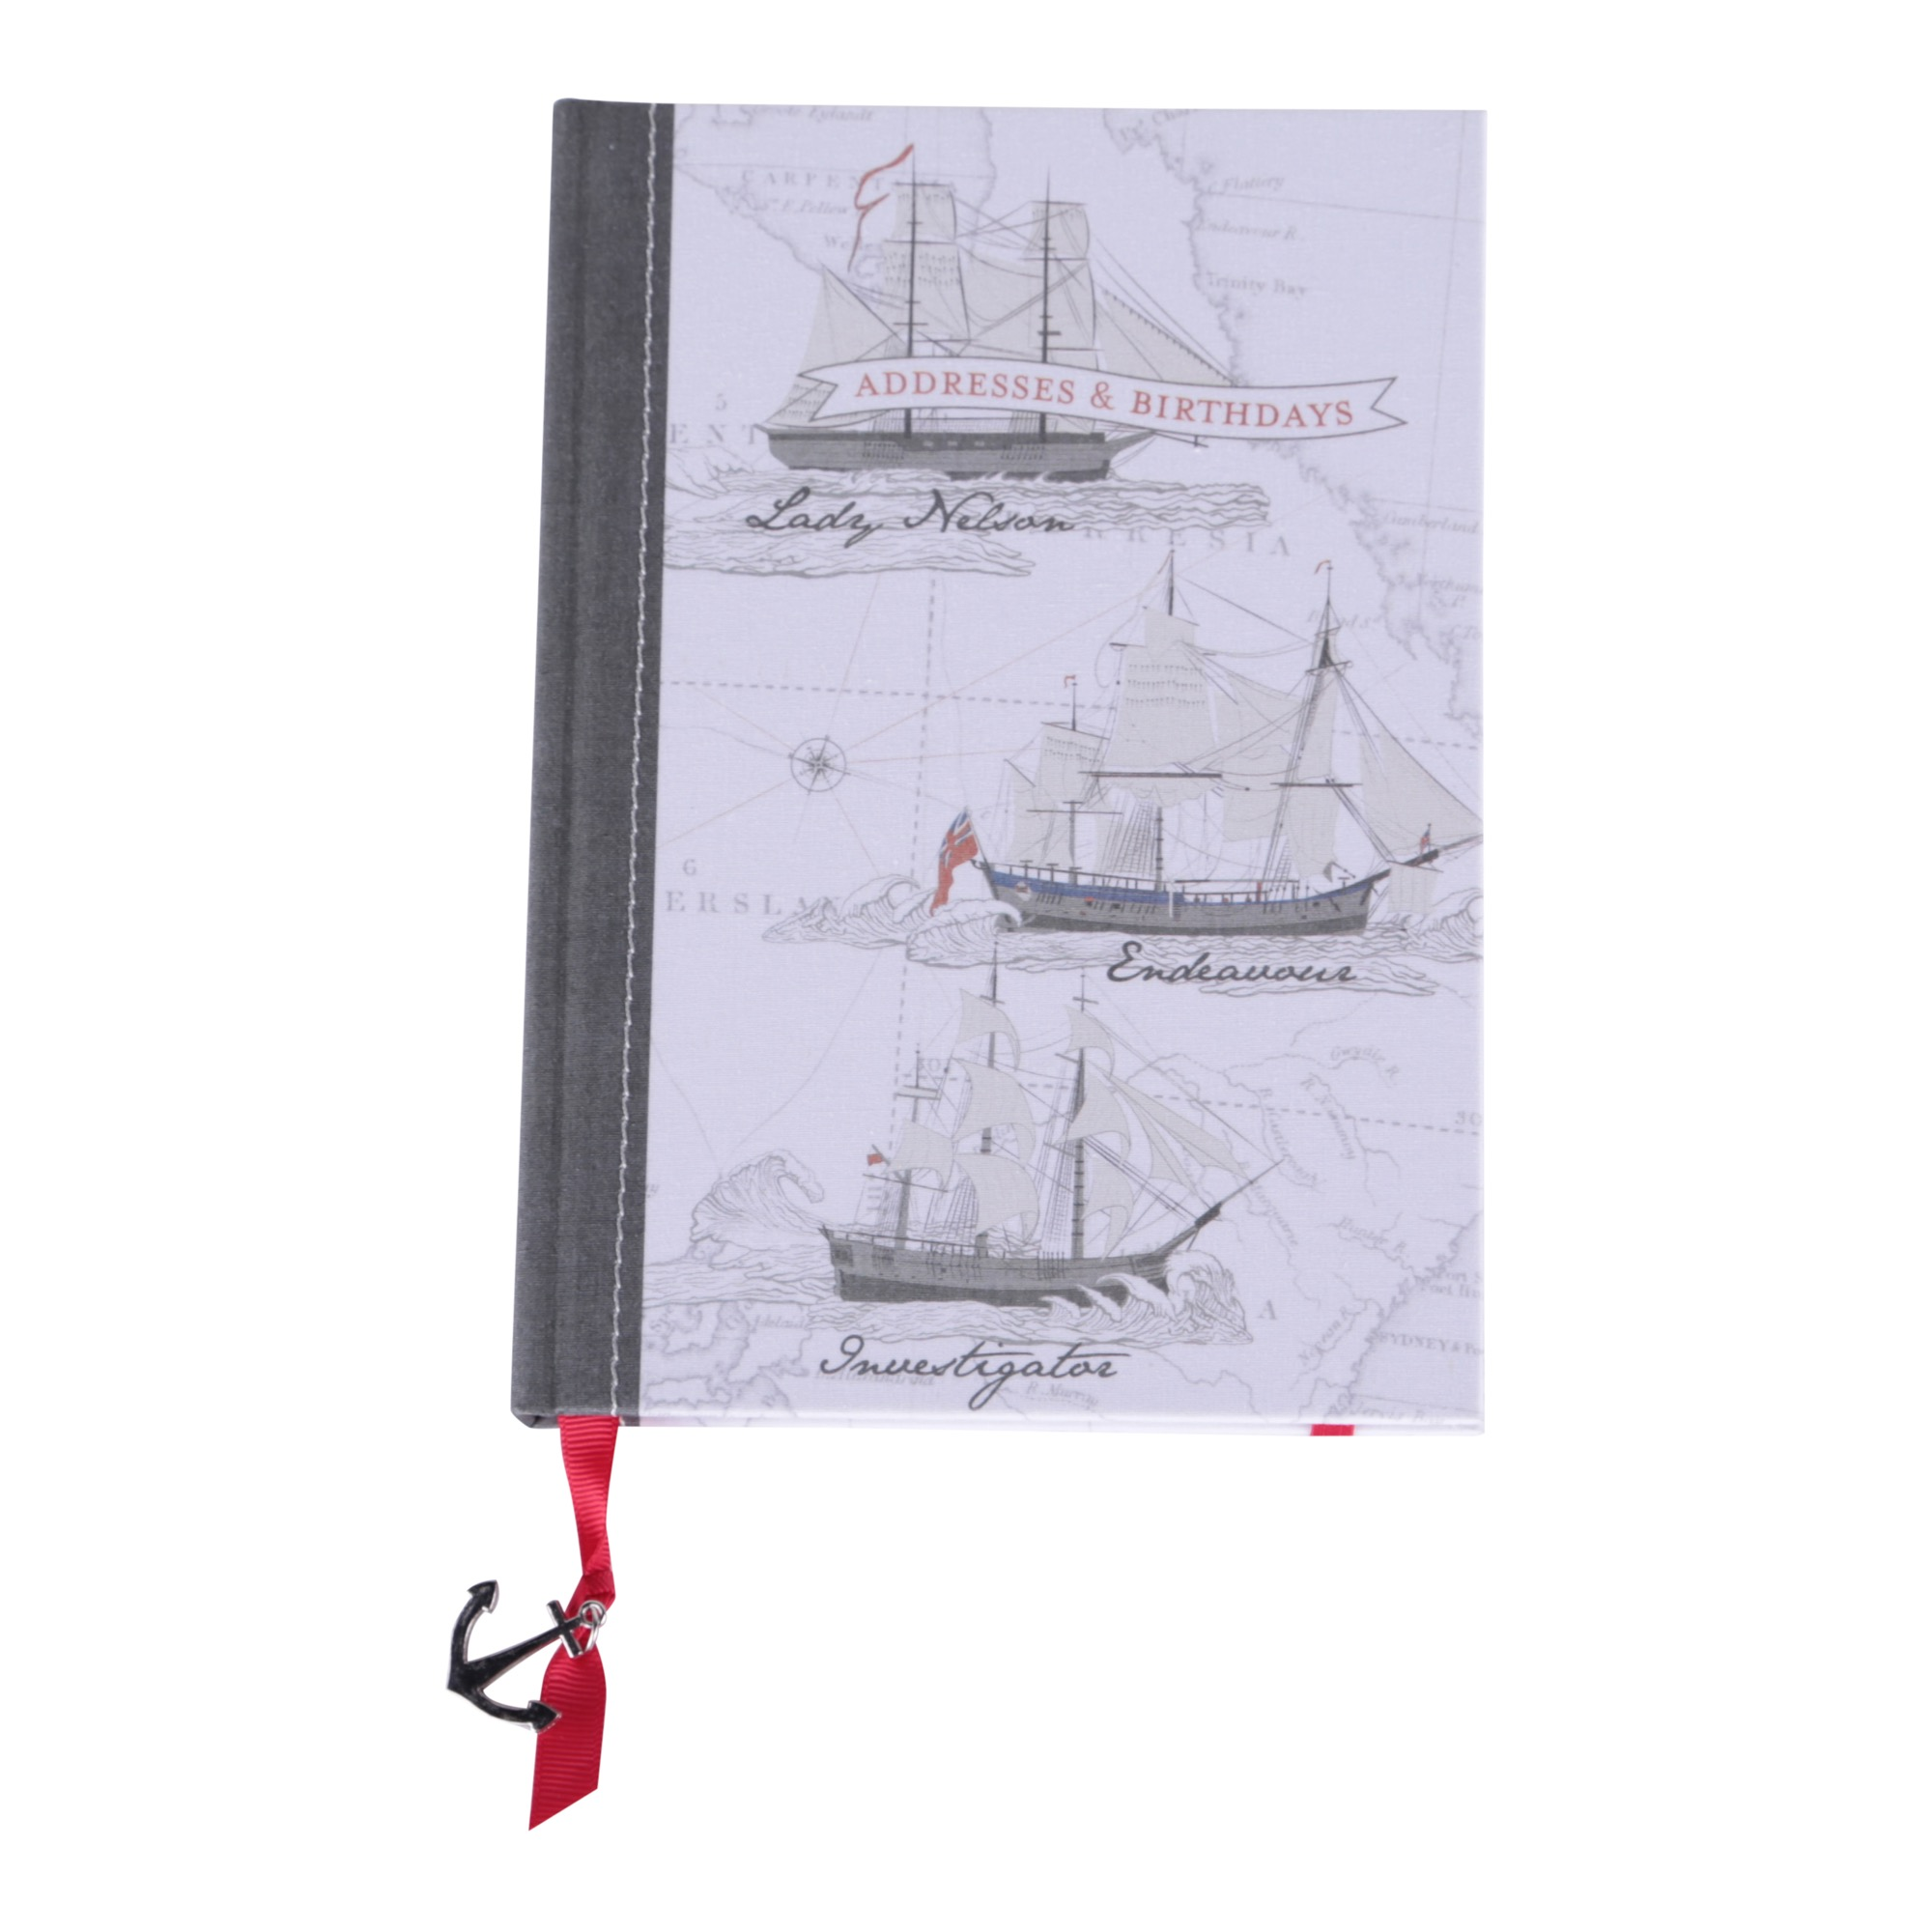 Early Australian Maritime - Address & Birthday Book